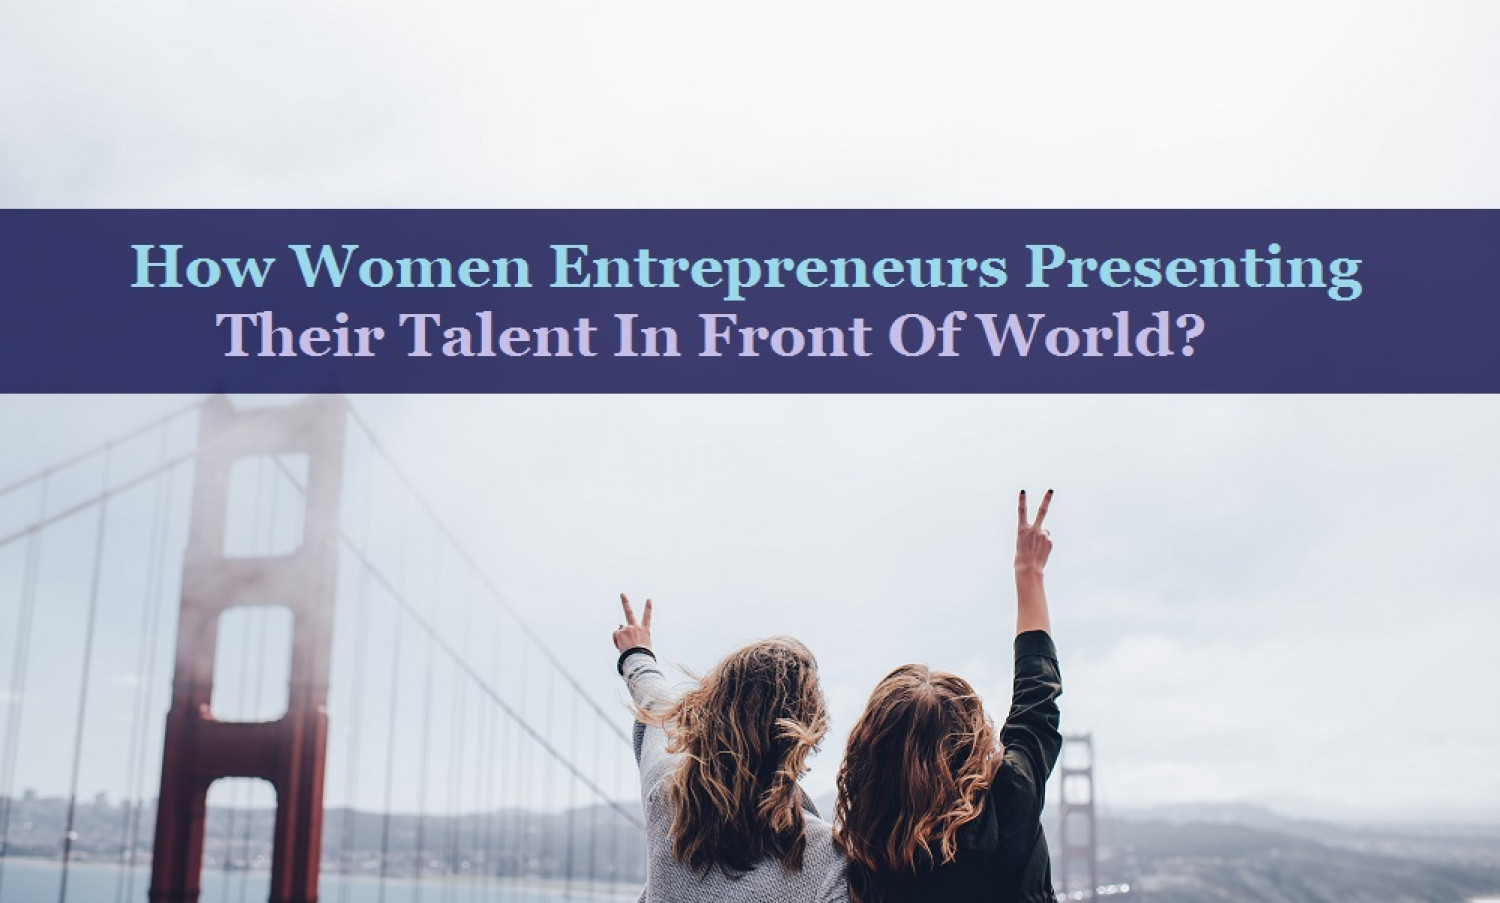 How Women Entrepreneurs Presenting Their Talent In Front Of World? Infographic